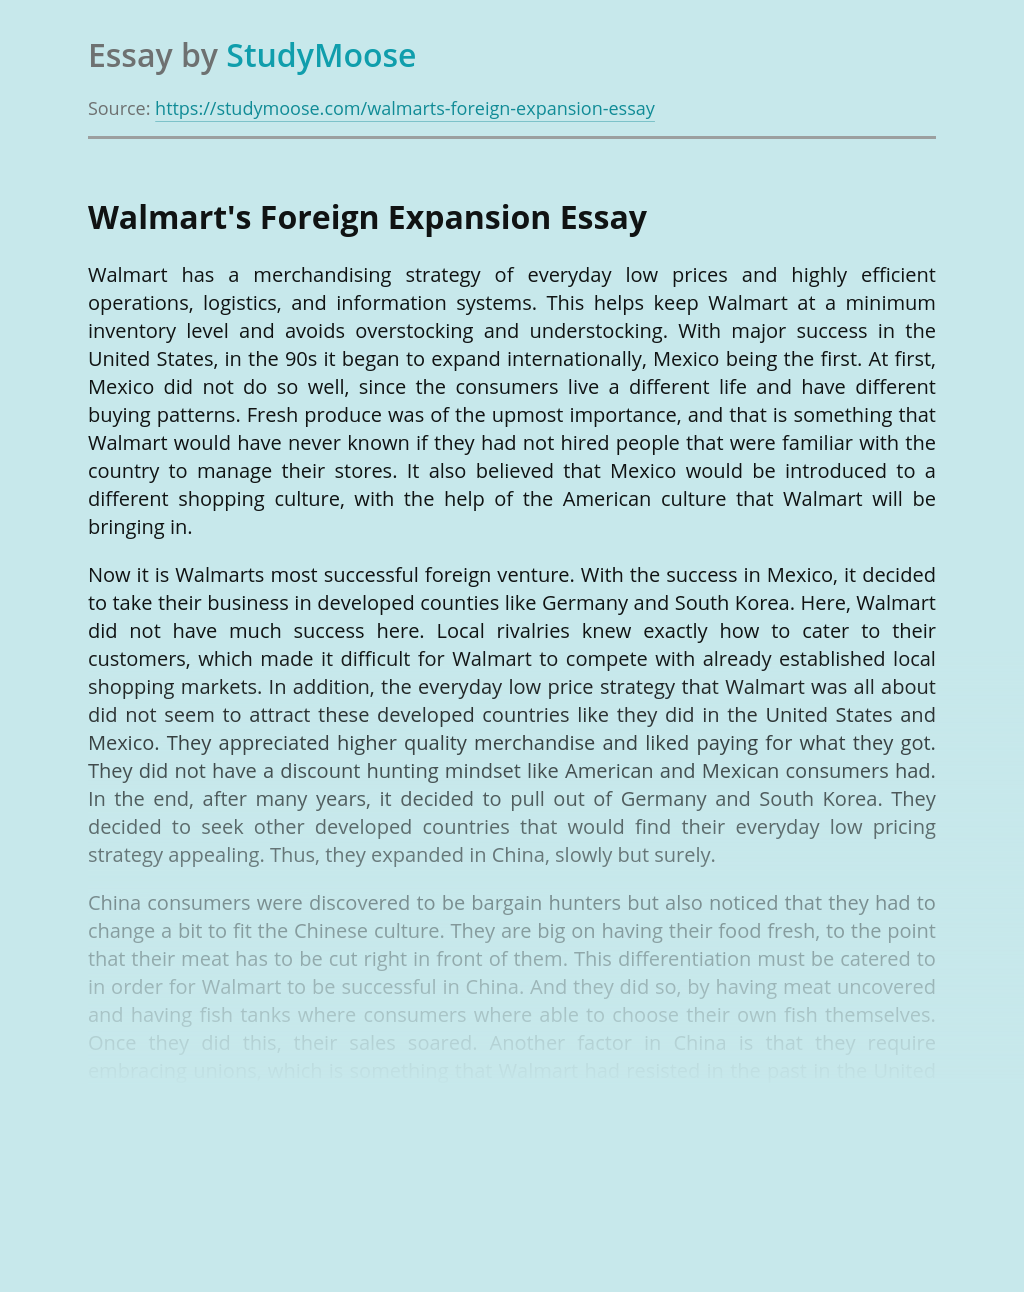 Walmart's Foreign Expansion